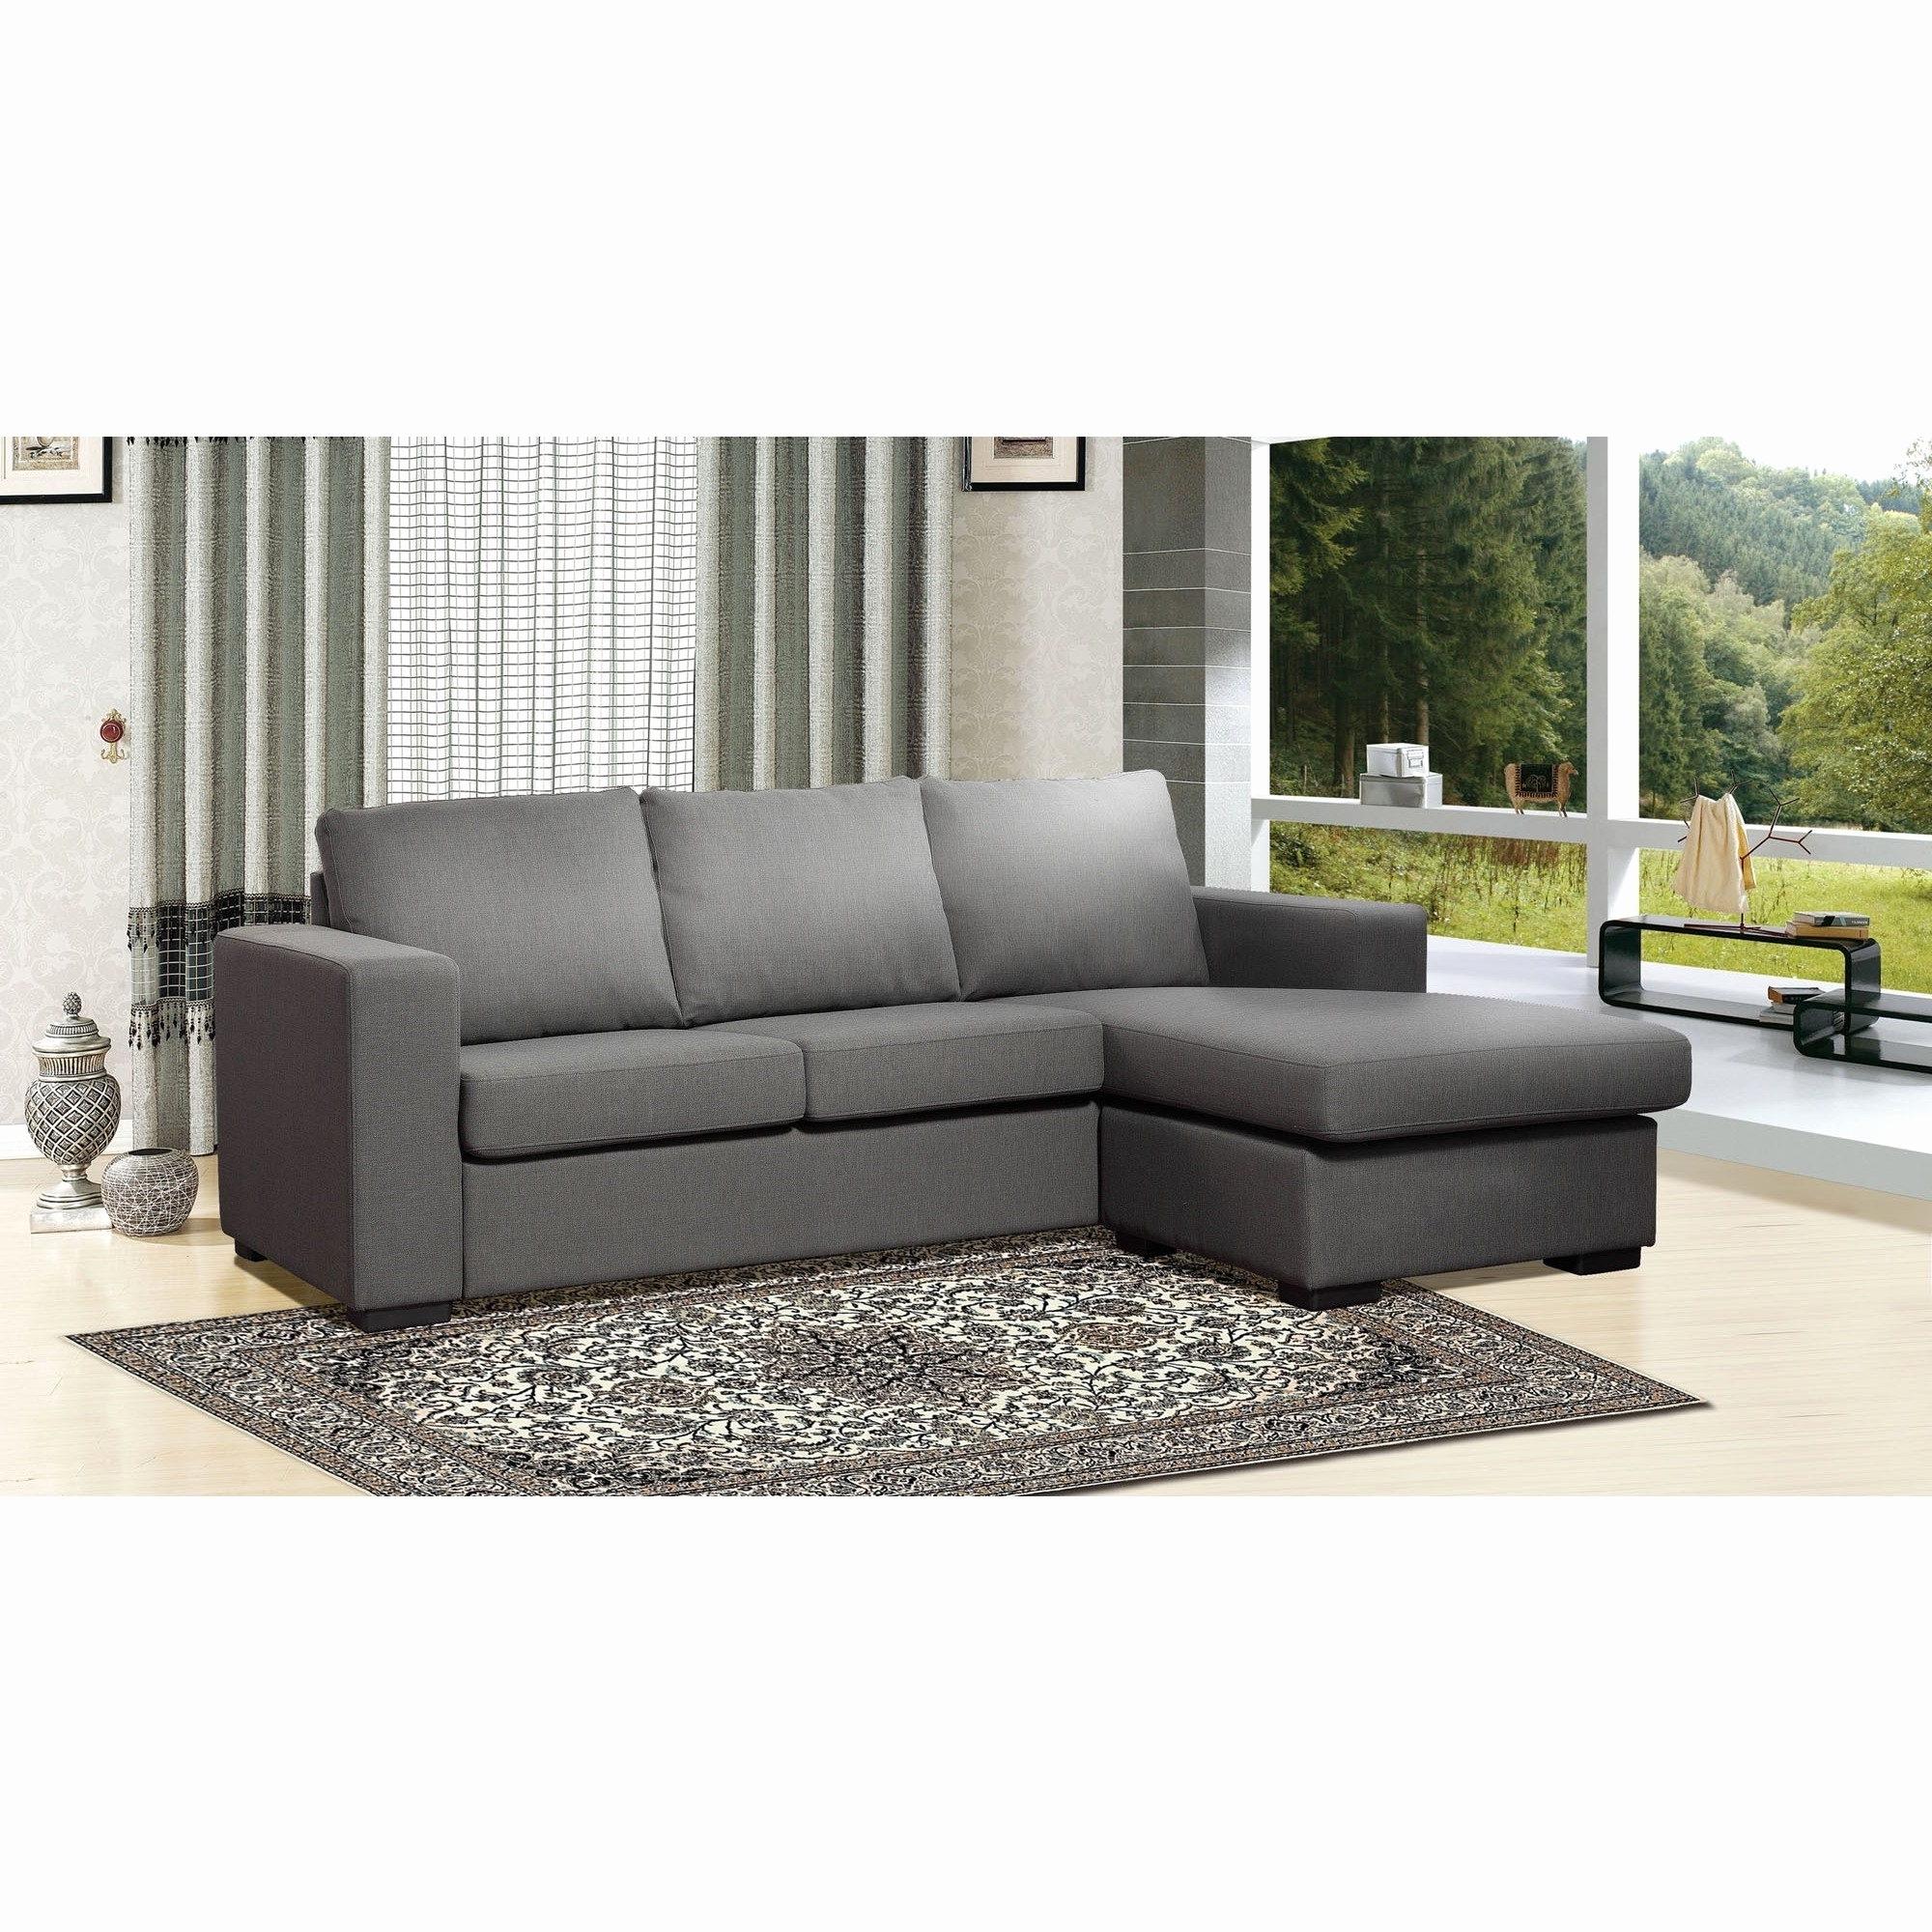 Most Popular Gray Sectional Sofas With Chaise Inside Unique Gray Sectional Sofa With Chaise 2018 – Couches Ideas (View 12 of 15)